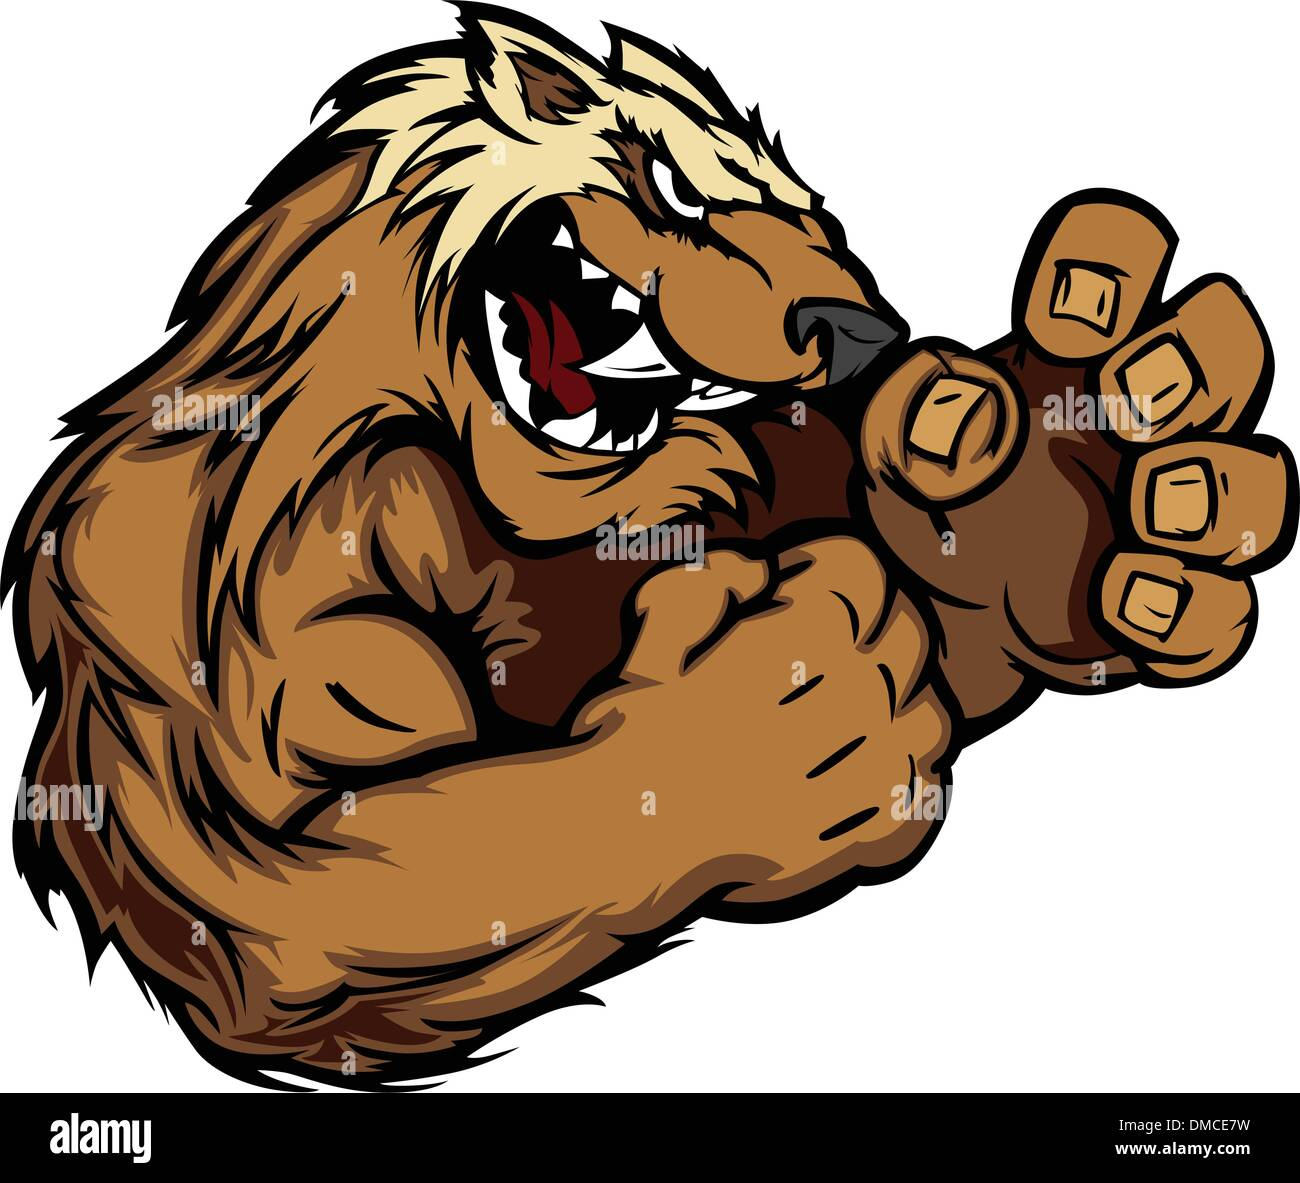 Graphic Vector Image of a Wolverine or Badger Mascot with Fighting Hands - Stock Image